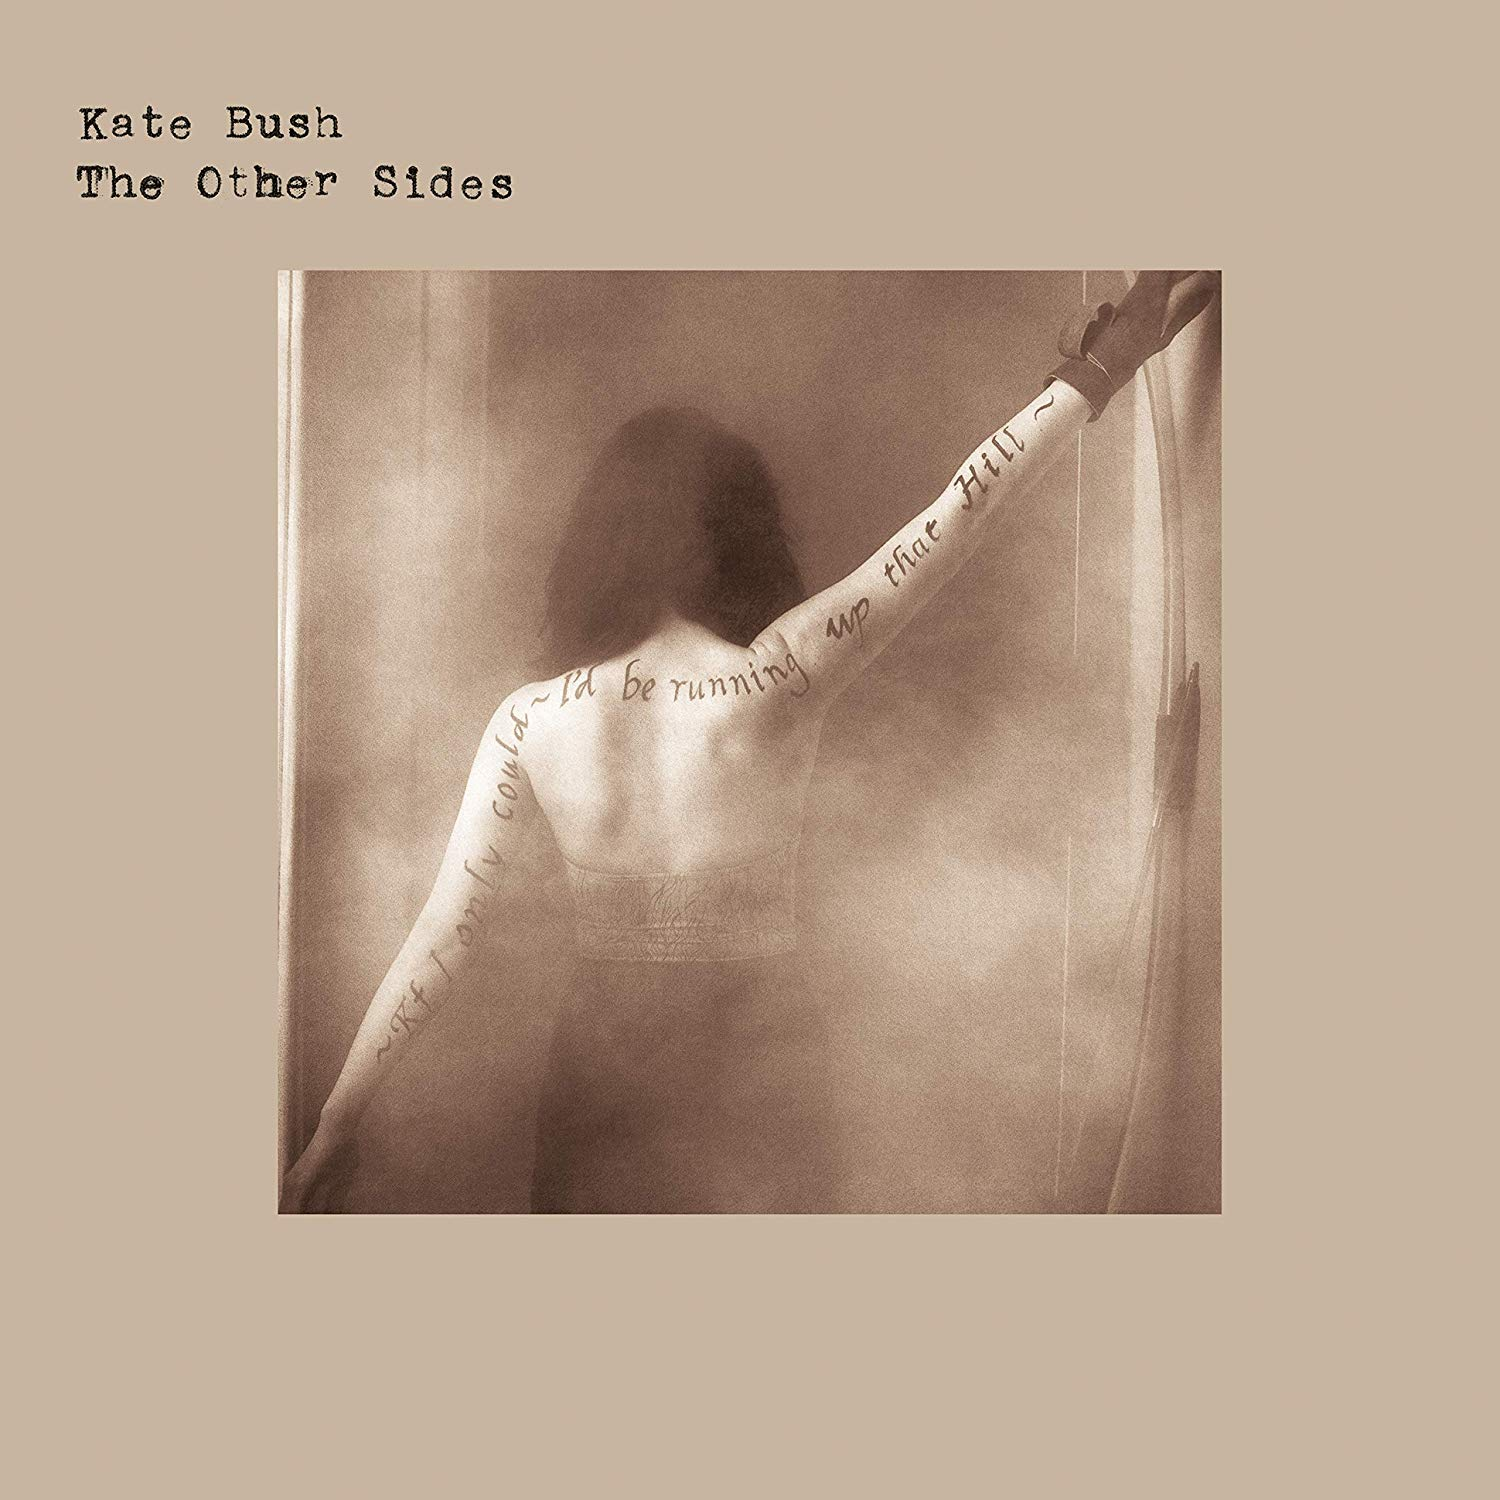 Kate Bush. The Other Sides (4 CD)